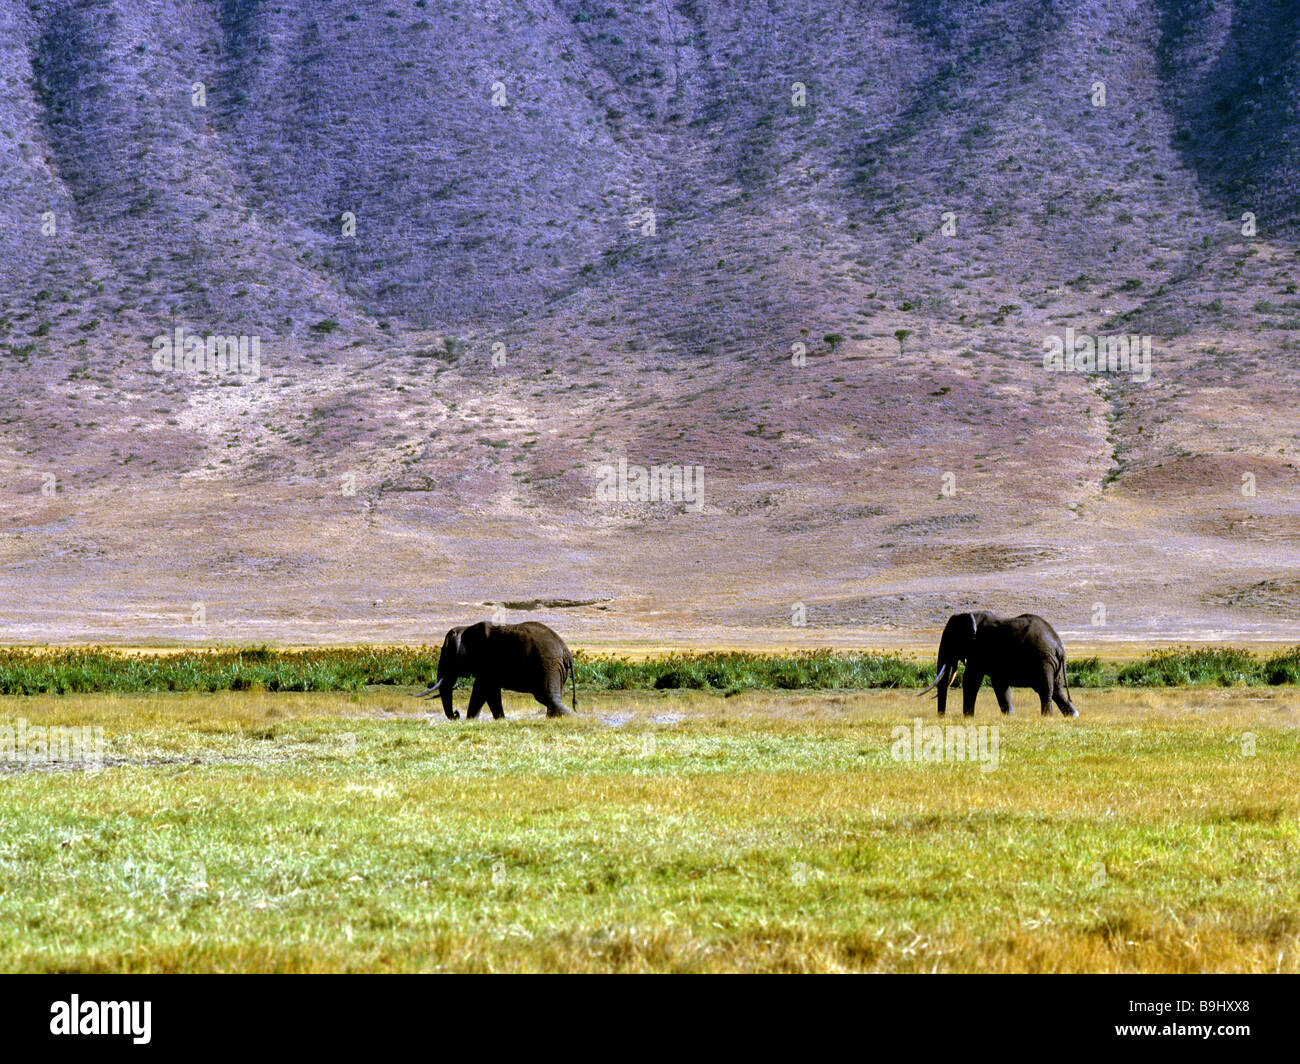 African Bush Elephants (Loxodonta africana), Ngorongoro Conservation Area, Tanzania, East Africa Stock Photo